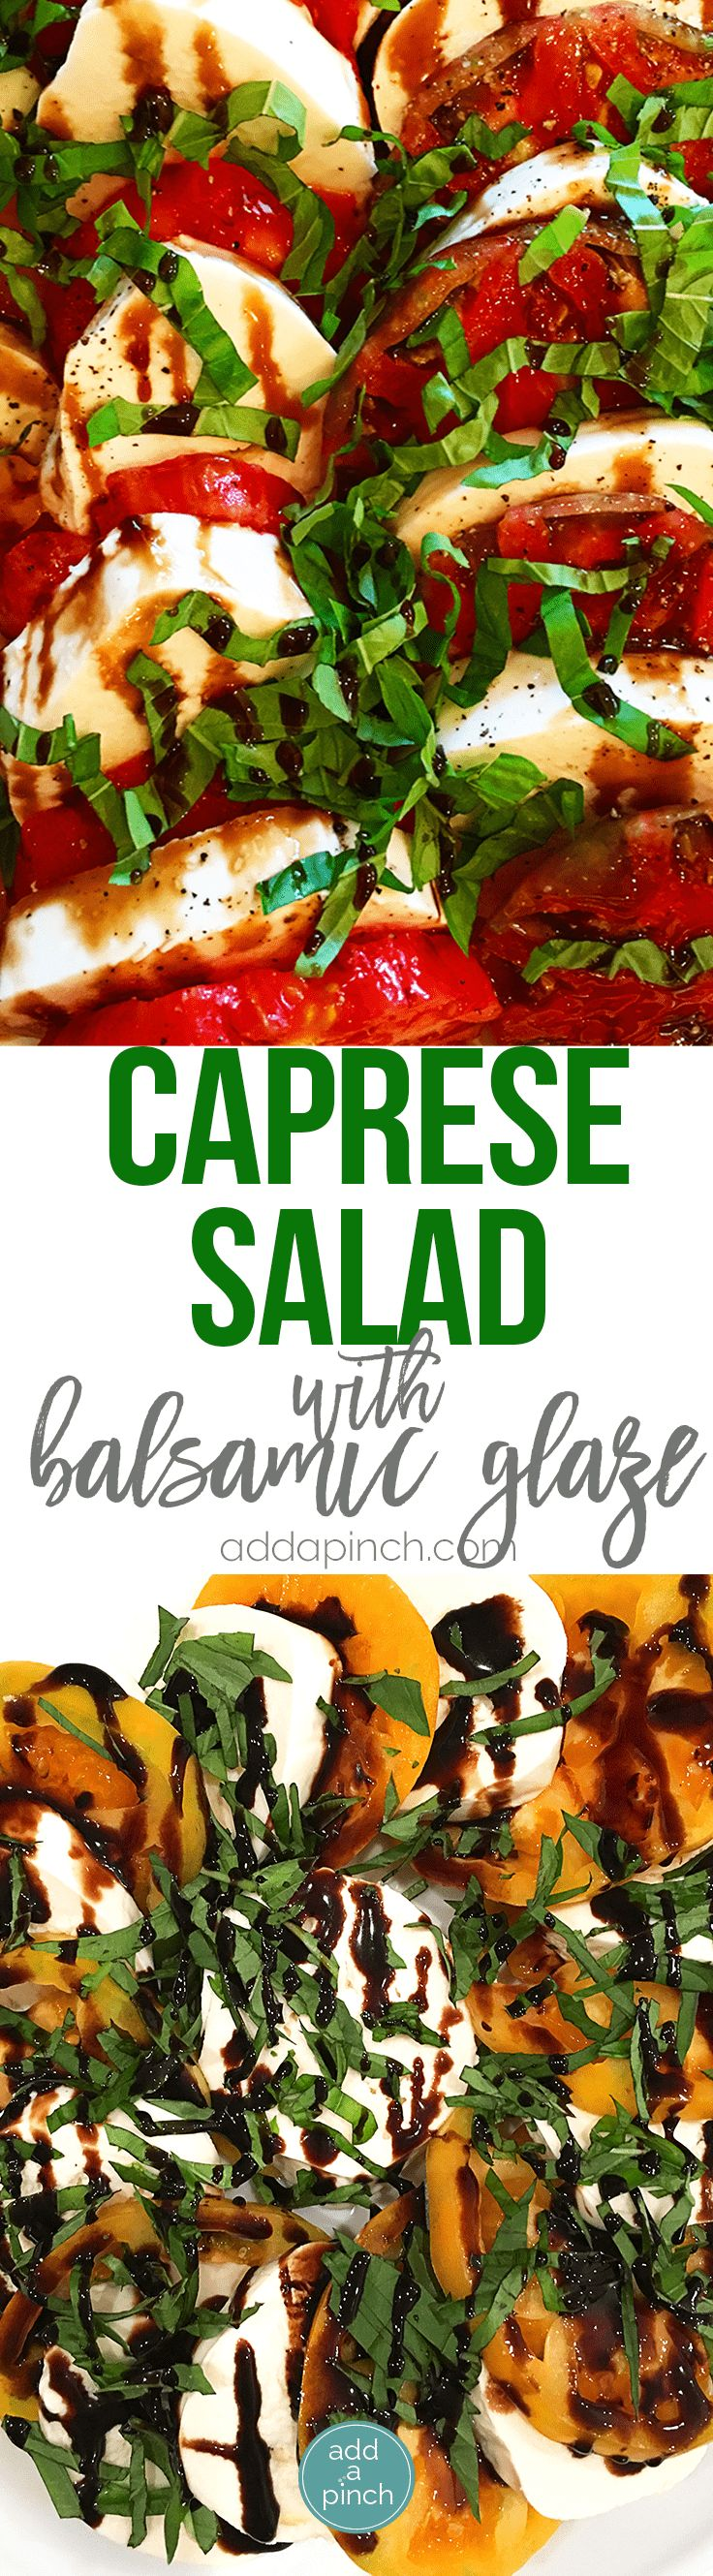 Caprese Salad with Balsamic Glaze Recipe - A classic caprese salad recipe with out of this world flavor. Topped with a sweet, yet tangy balsamic glaze to elevate every single bite! // addapinch.com